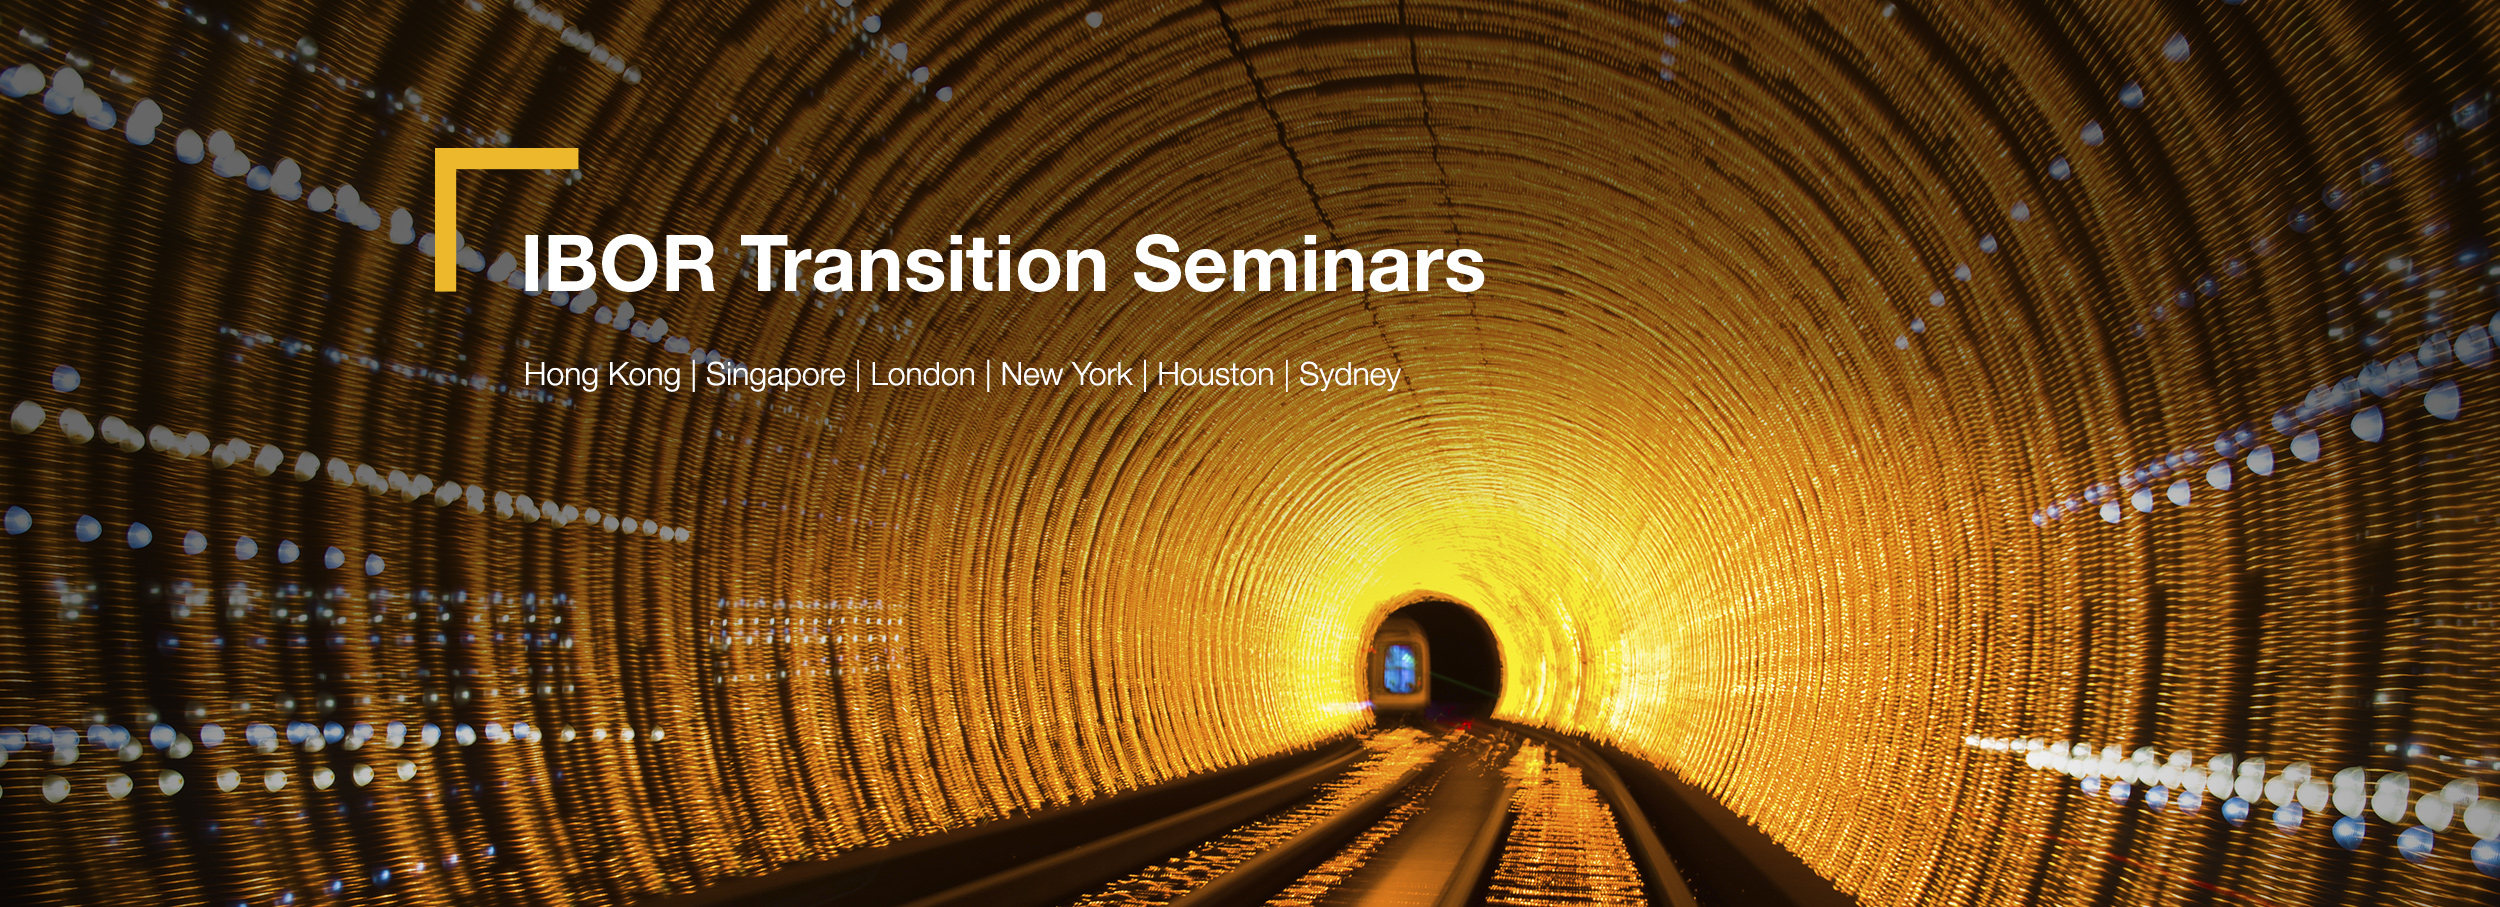 IBOR Transition Seminars